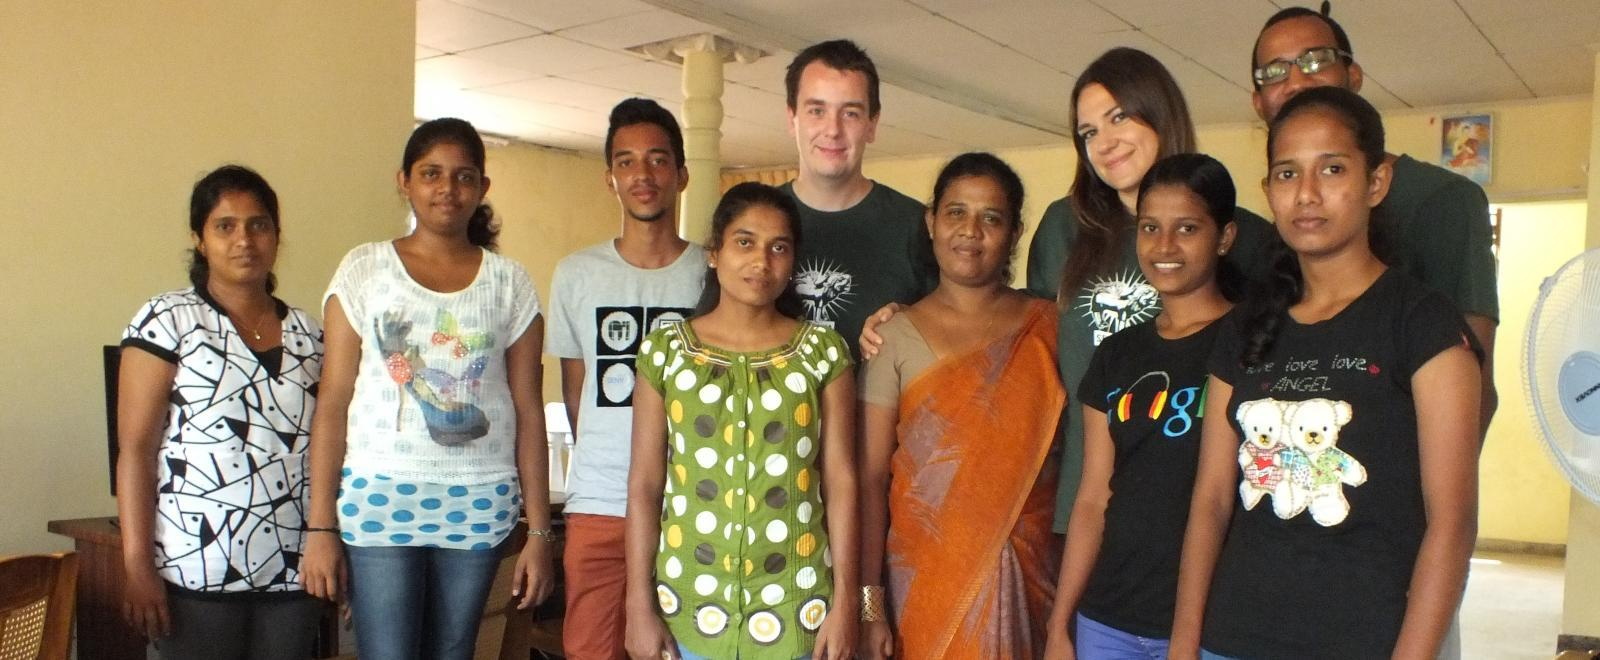 Projects Abroad interns at their business placement in Sri Lanka.